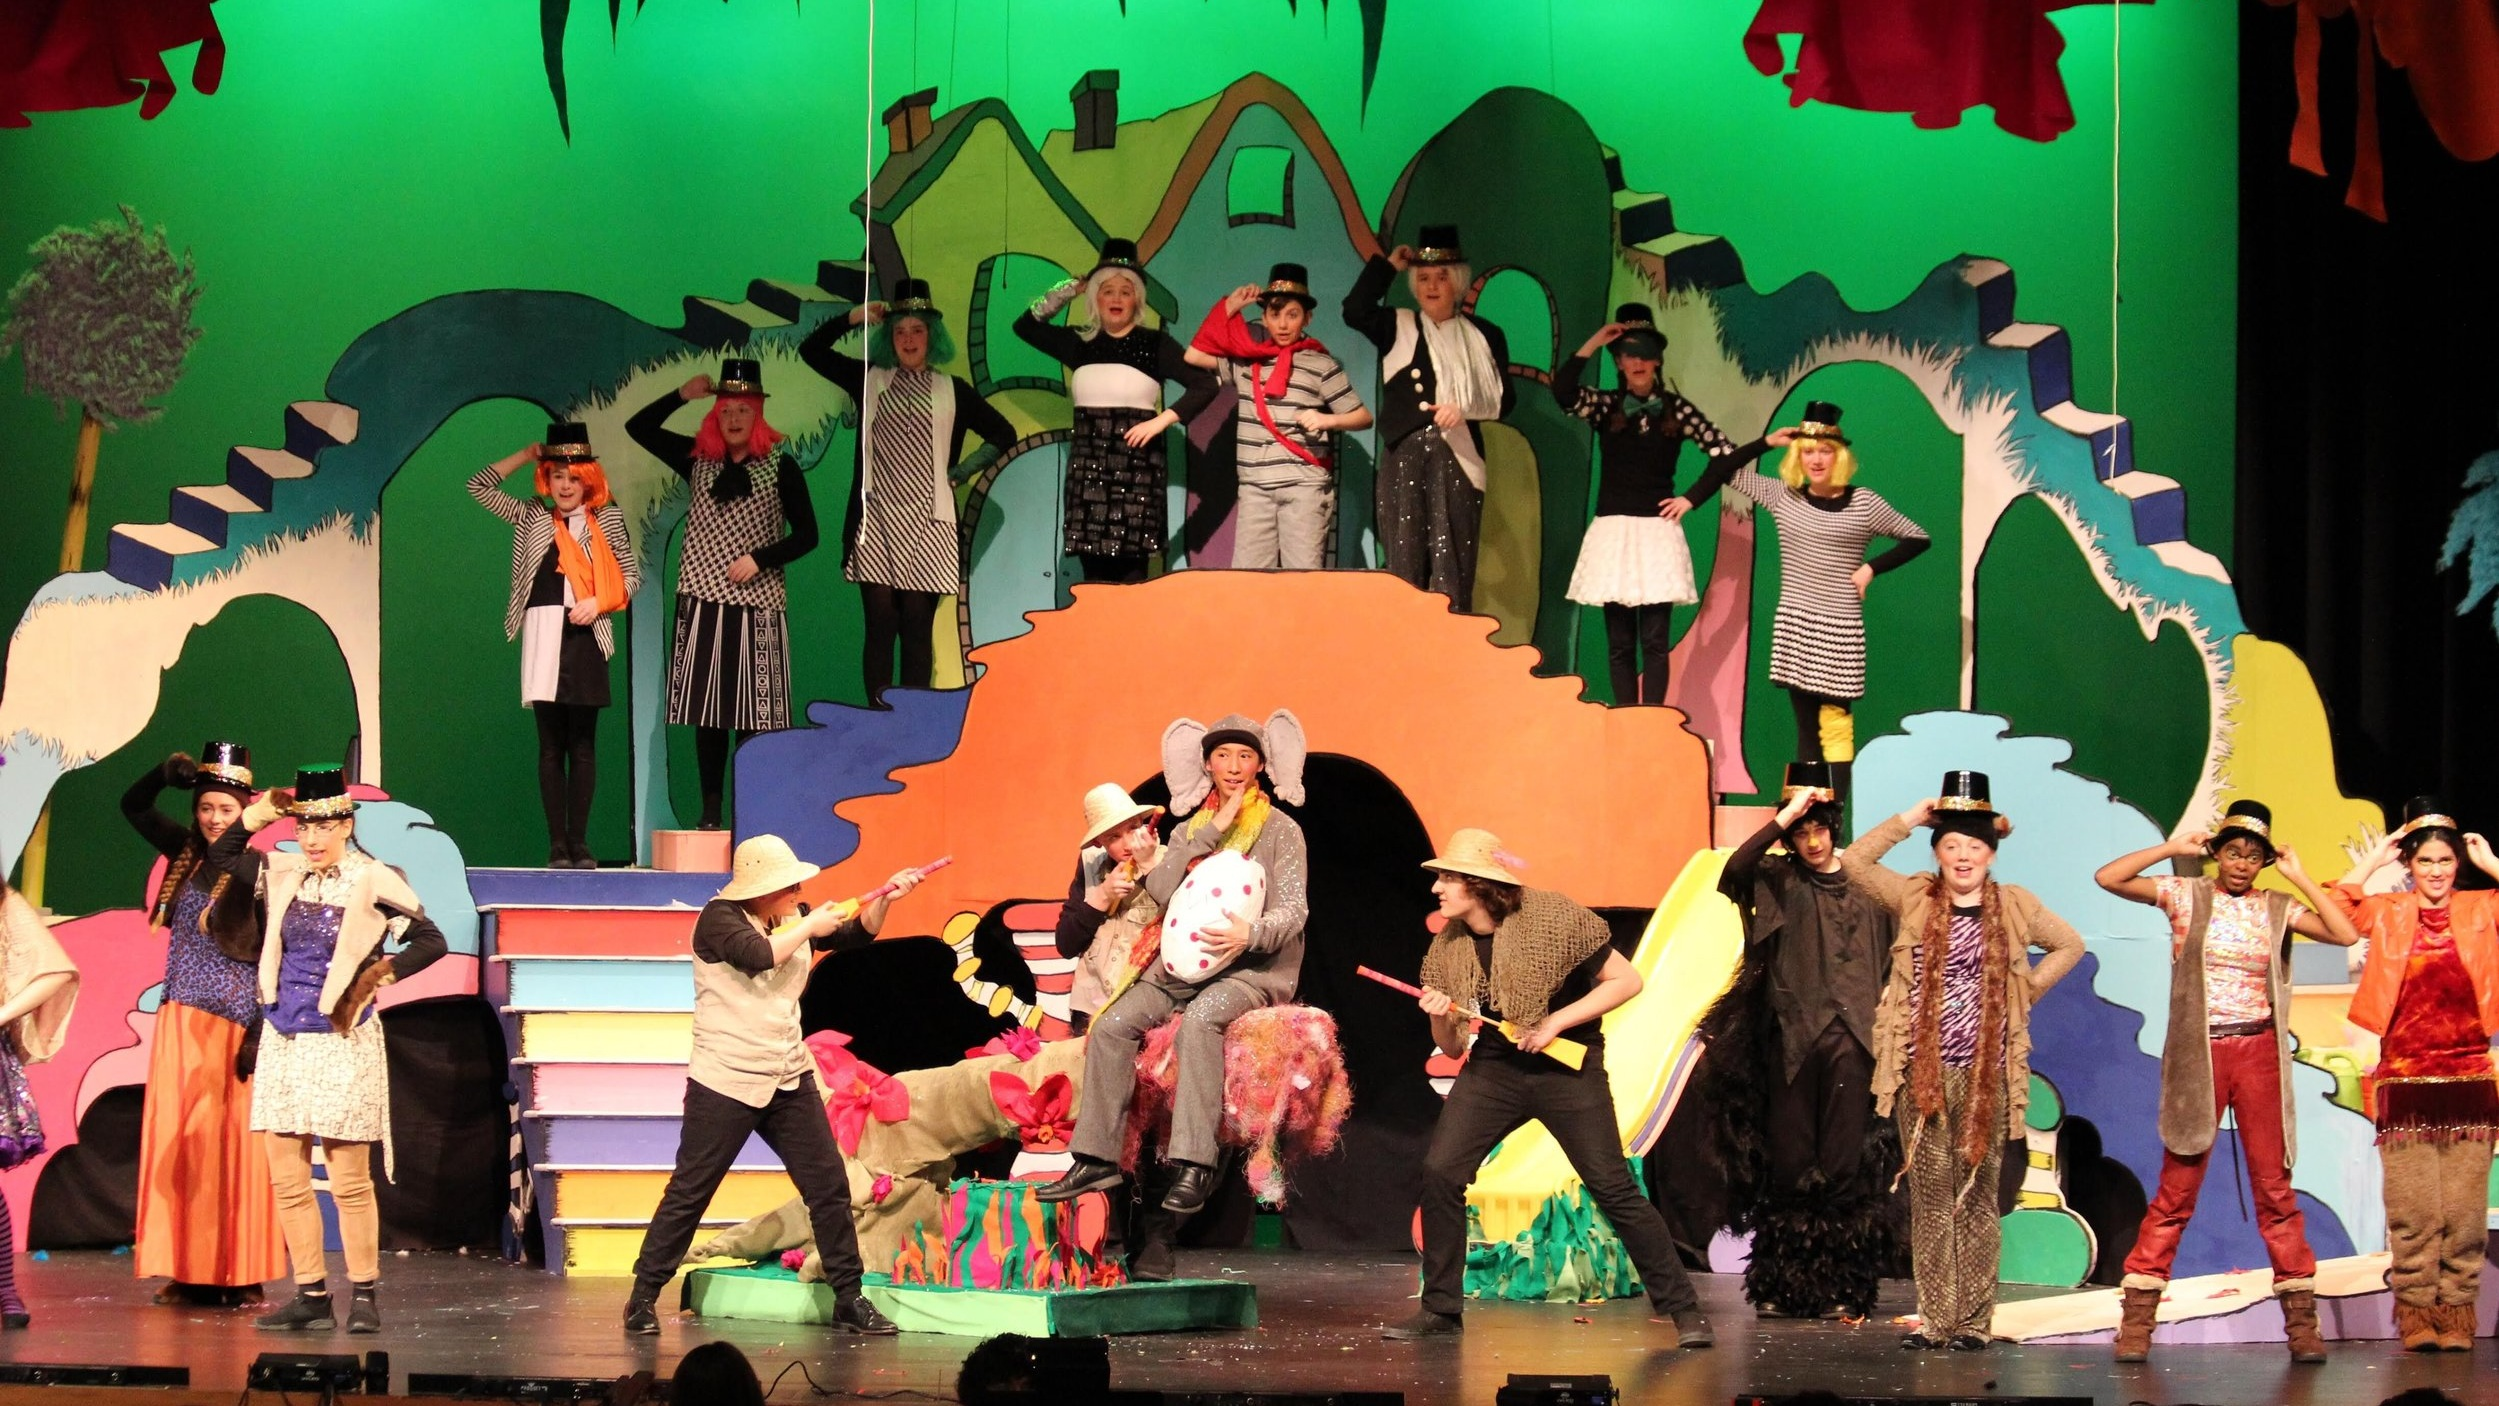 Seussical+Production+Image+5.jpg